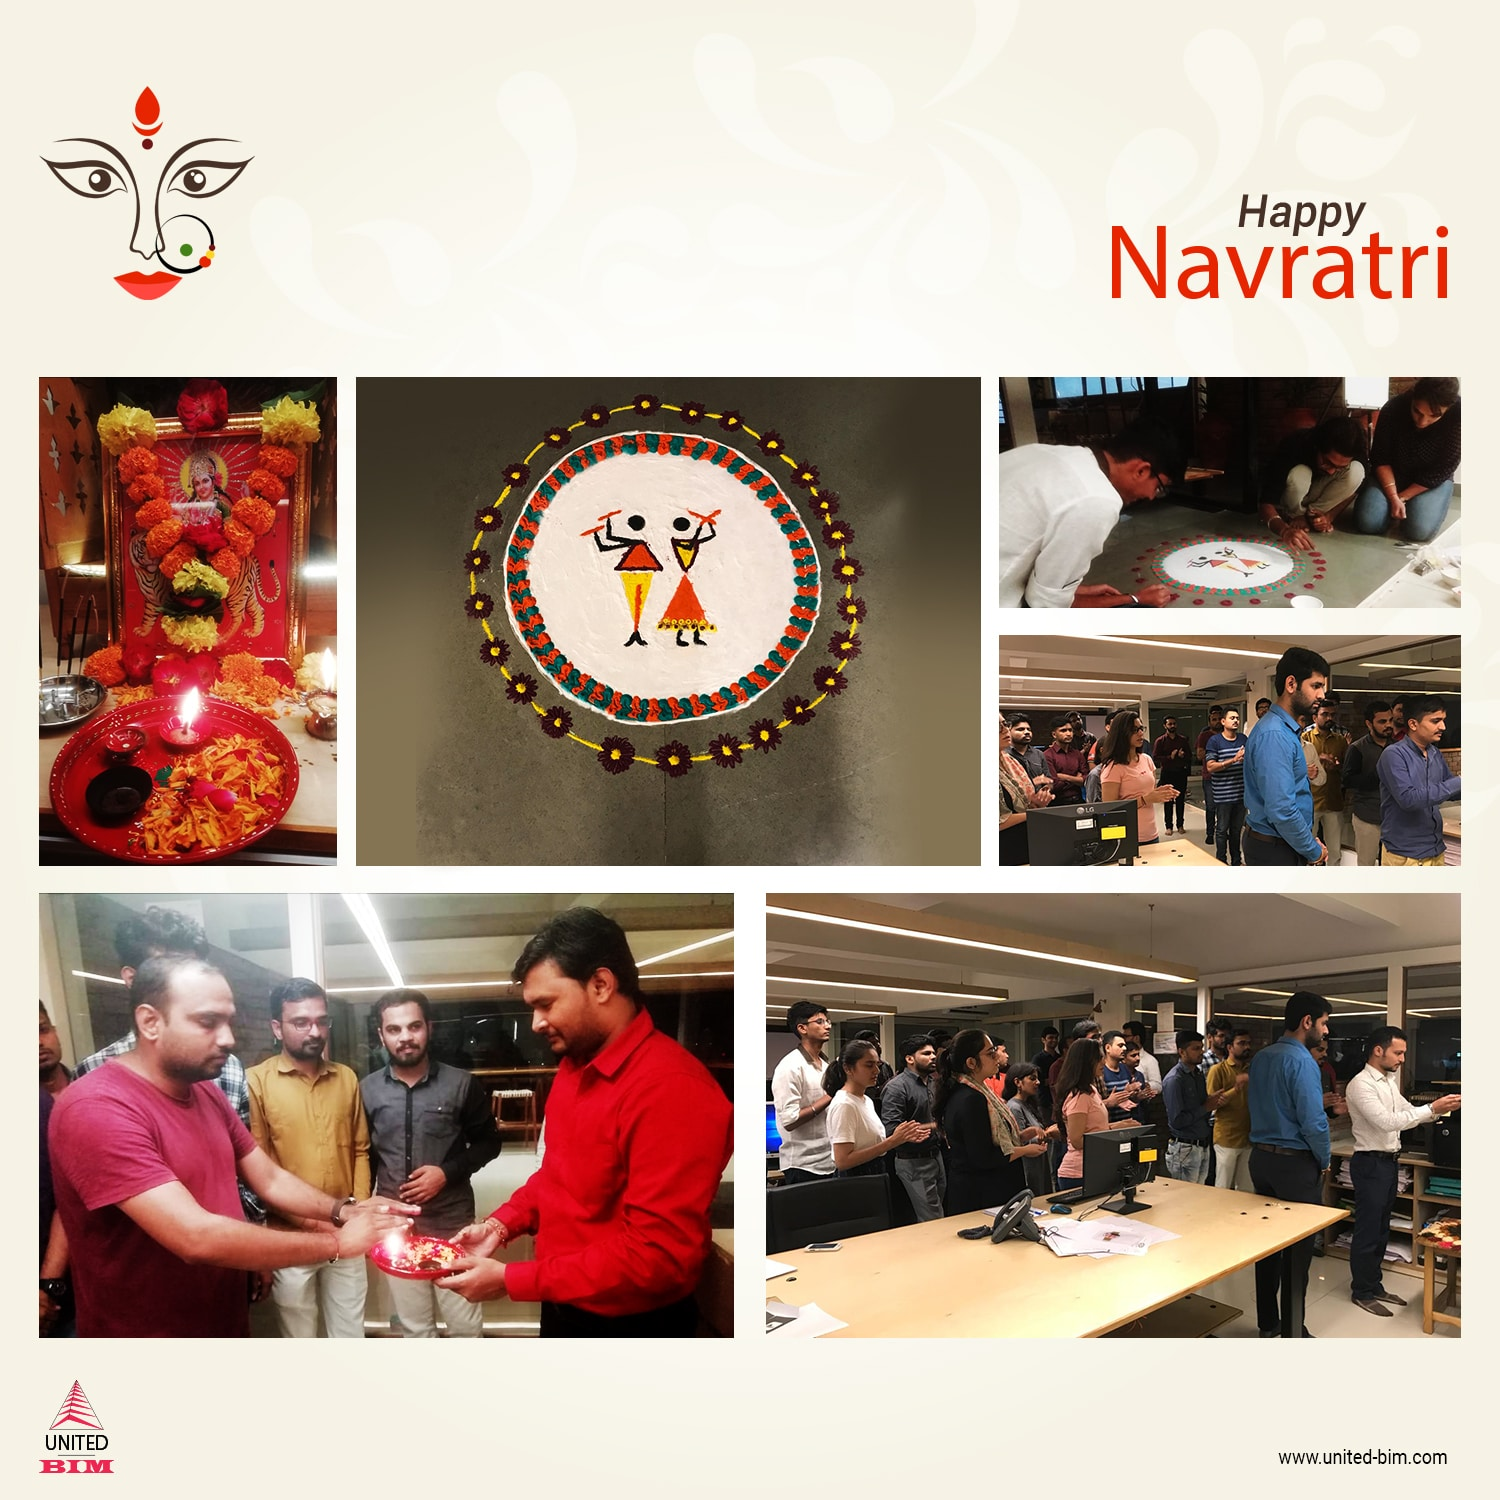 United-BIM Team Celebrating Navratri Festival 2019